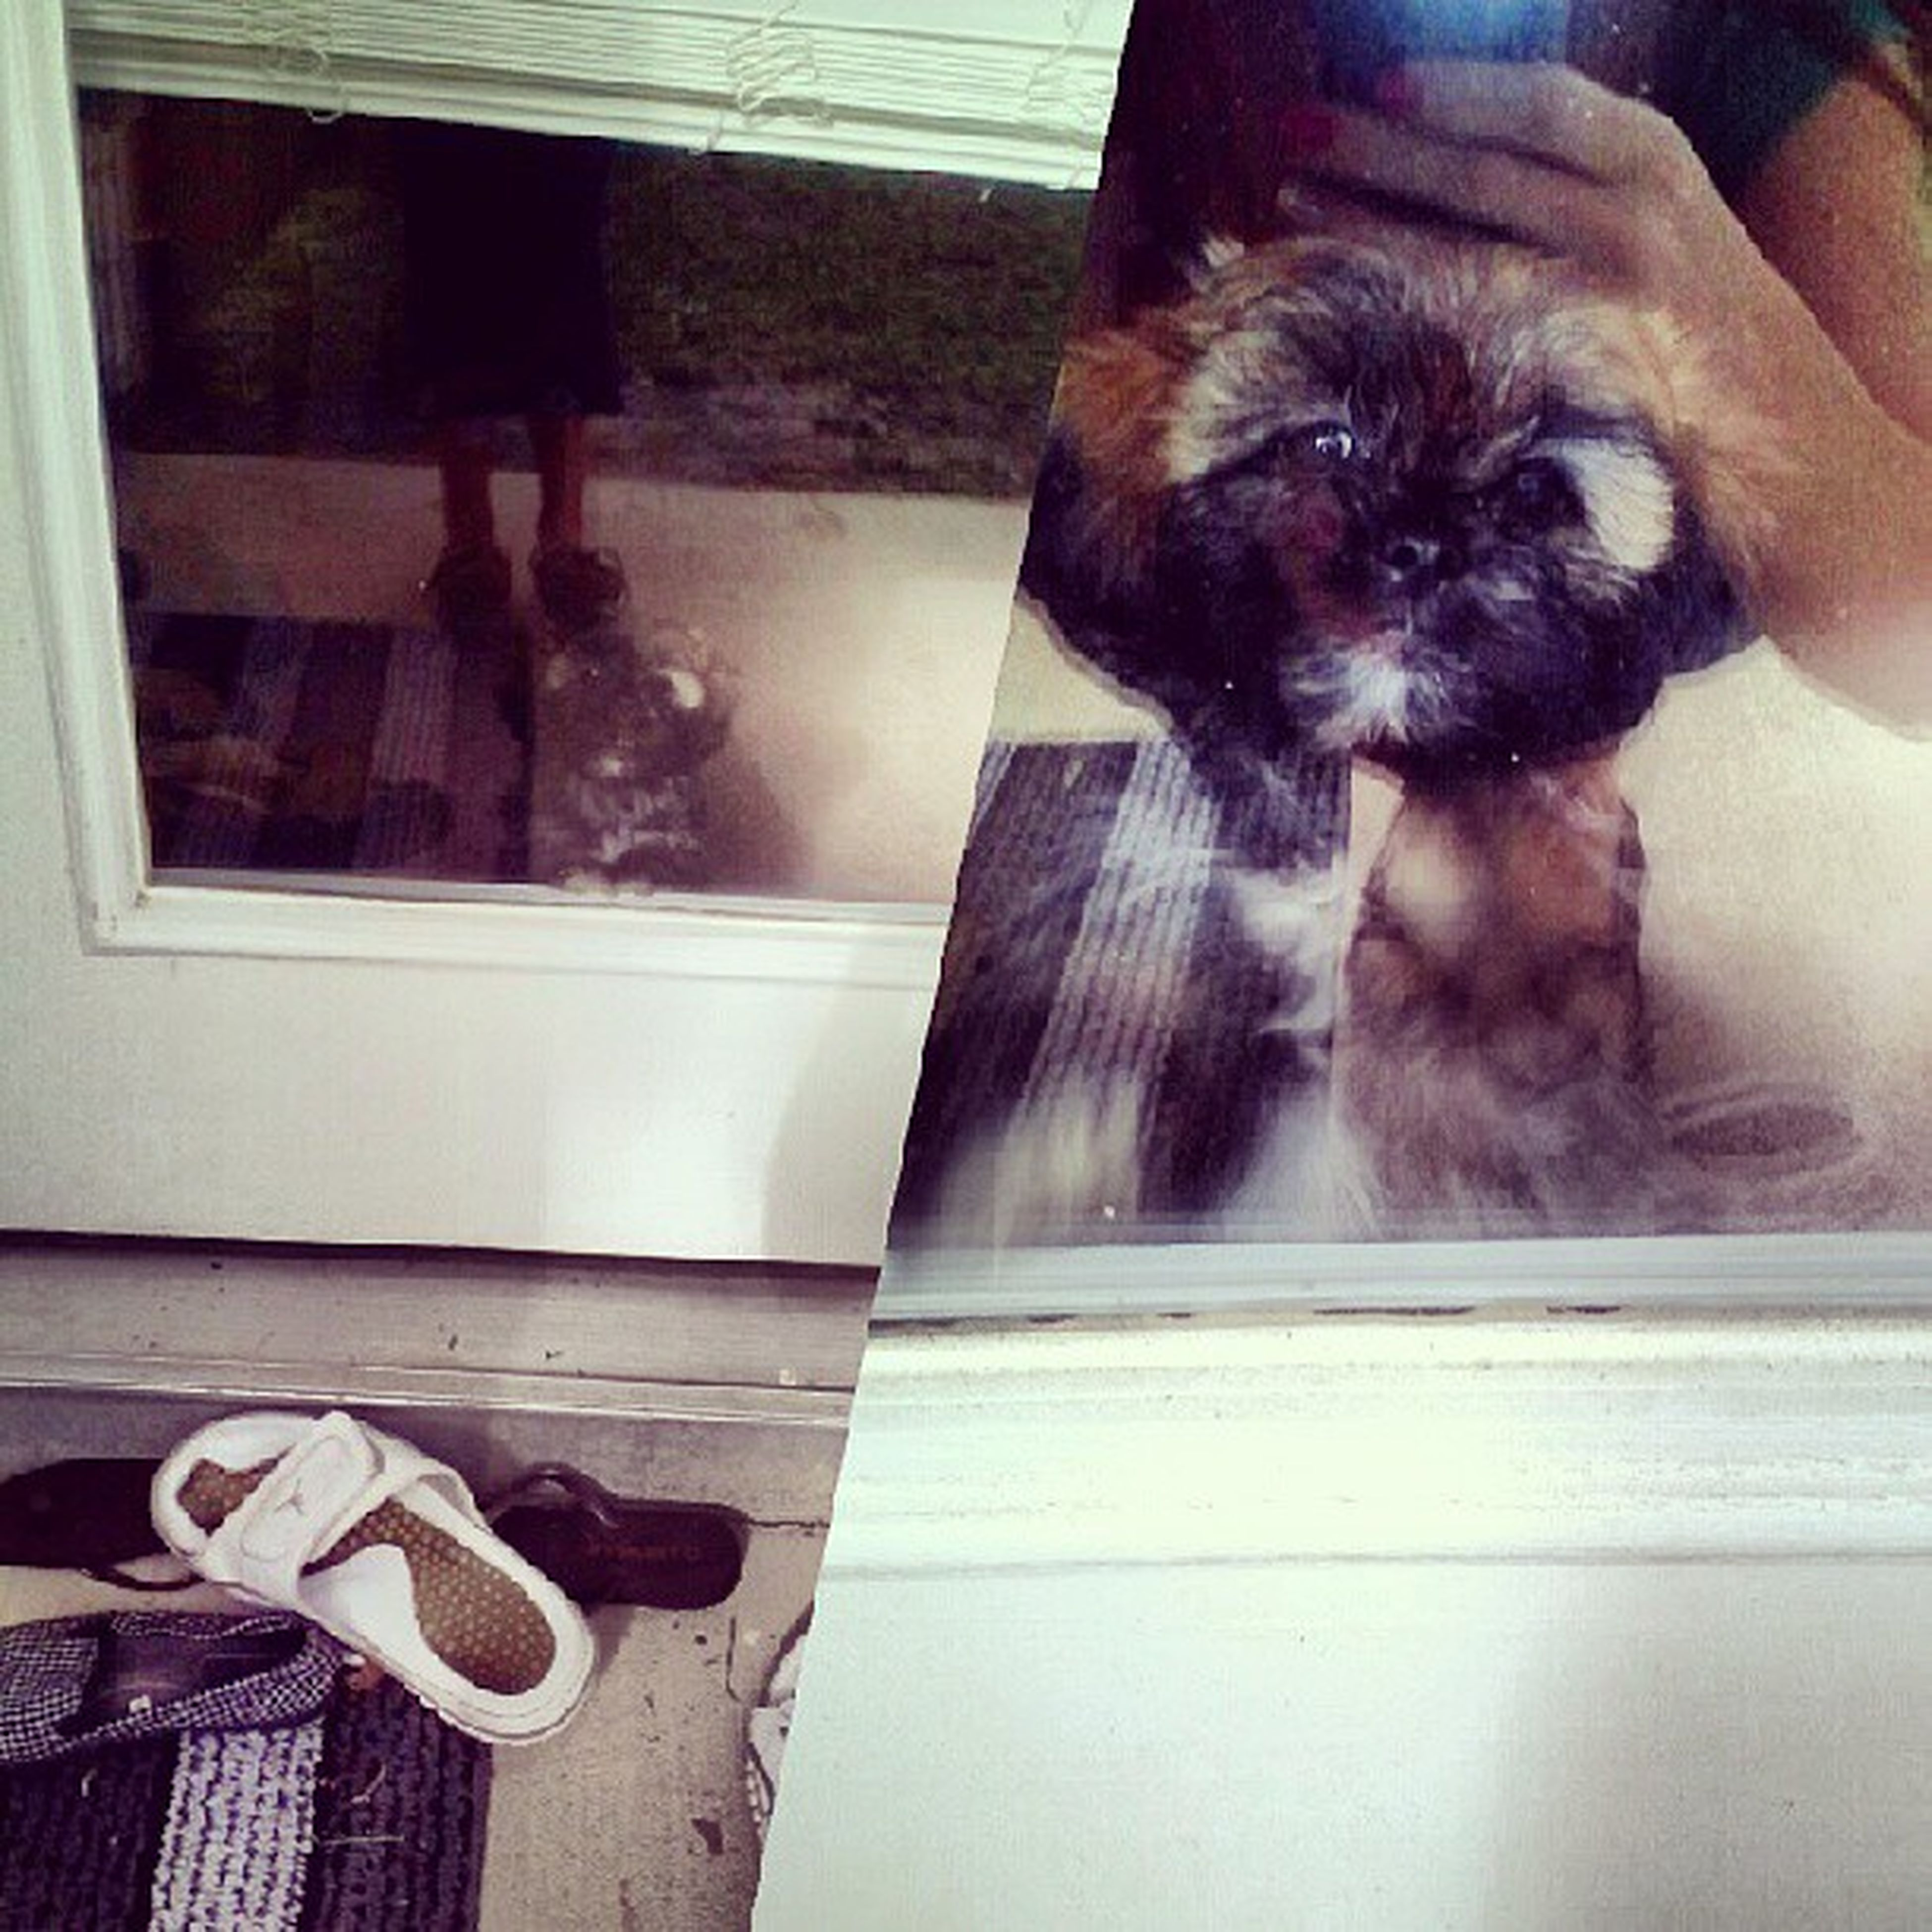 pets, domestic animals, animal themes, indoors, one animal, mammal, domestic cat, cat, dog, person, men, lifestyles, sitting, unrecognizable person, low section, pet owner, part of